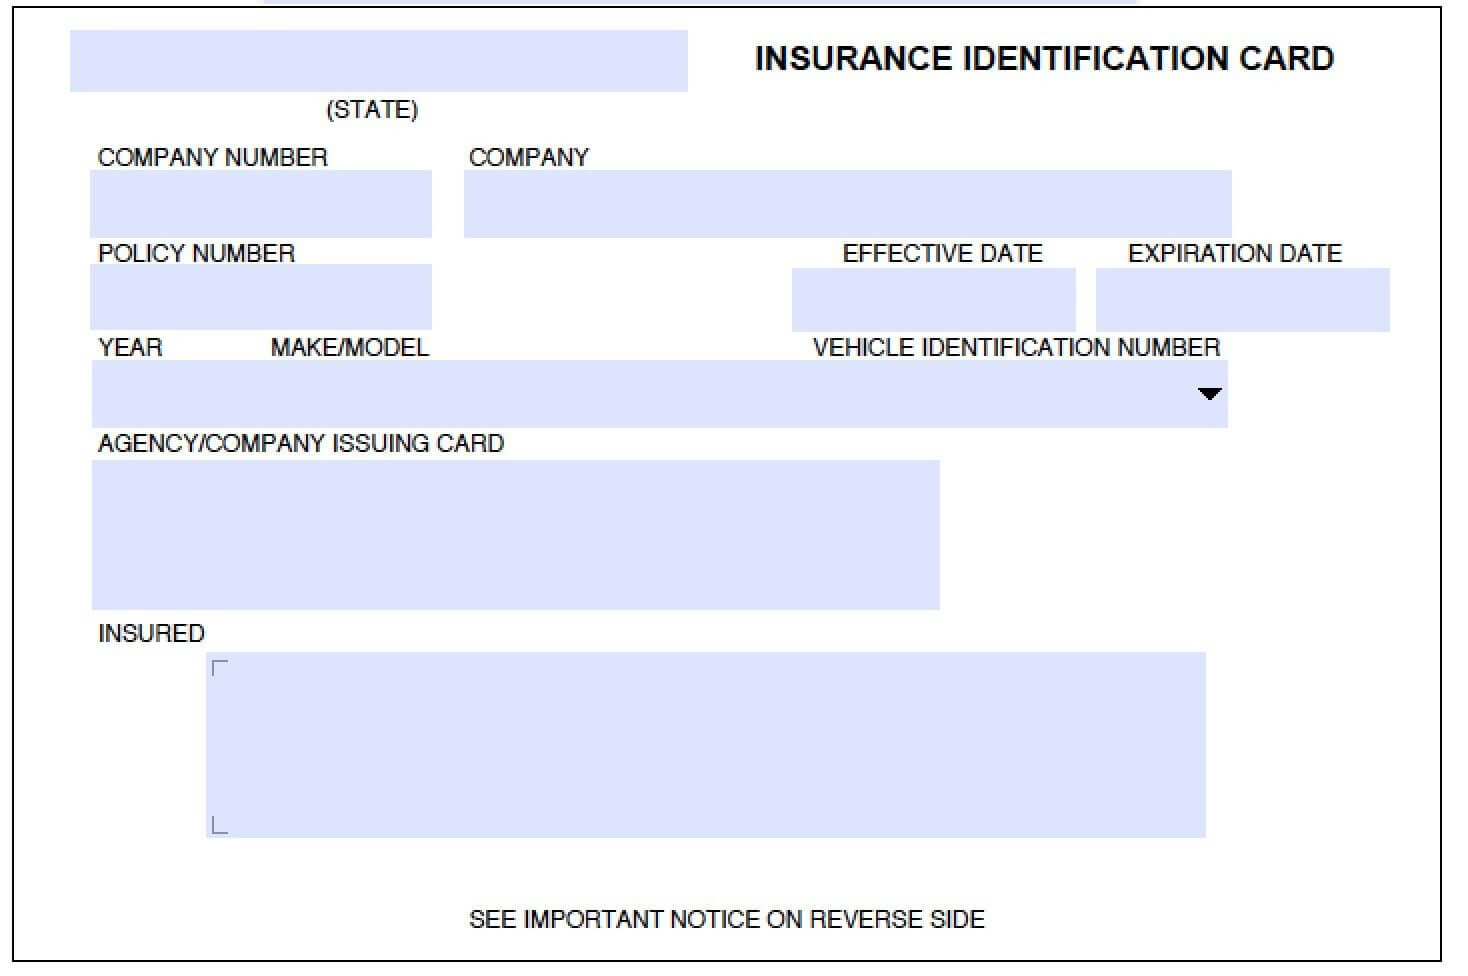 Auto Insurance Id Card Template On Auto Insurance Card Regarding Auto Insurance Id Card Template